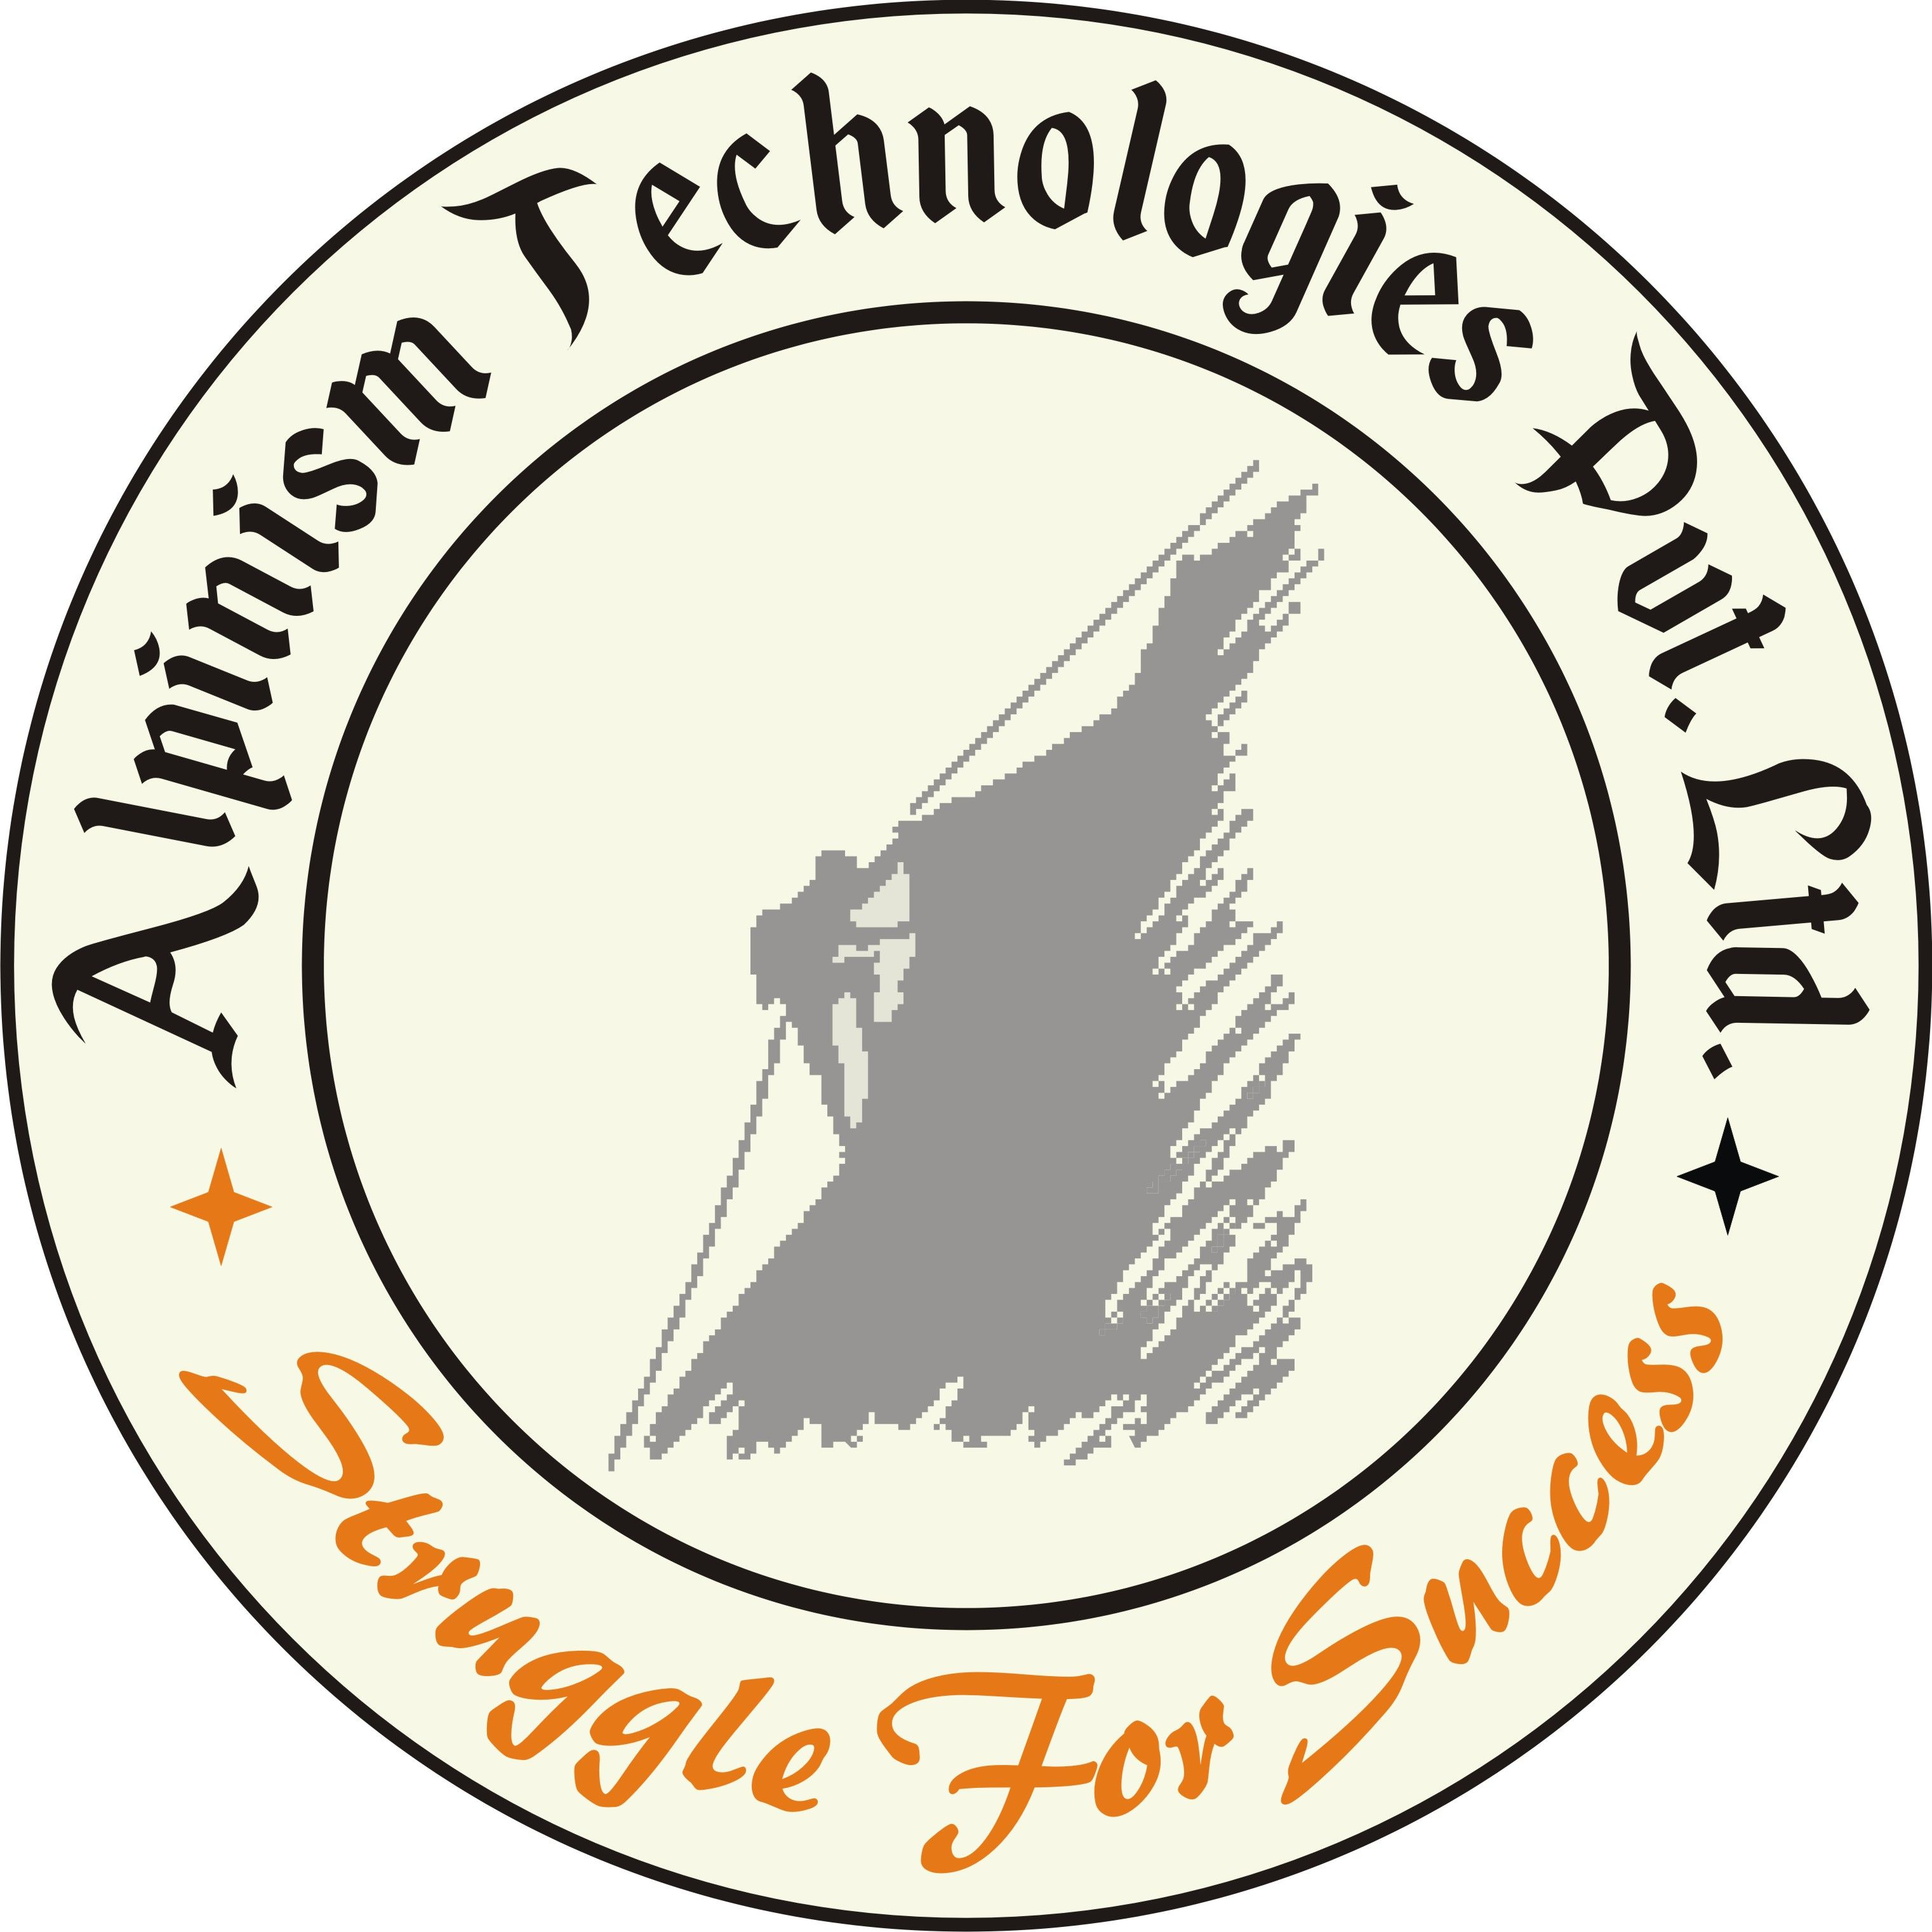 Alpinism Technologies It Based Company Consistst Efficient Web Developers In Bangalore Located In Jp N Web Design Company Web Design Design Company